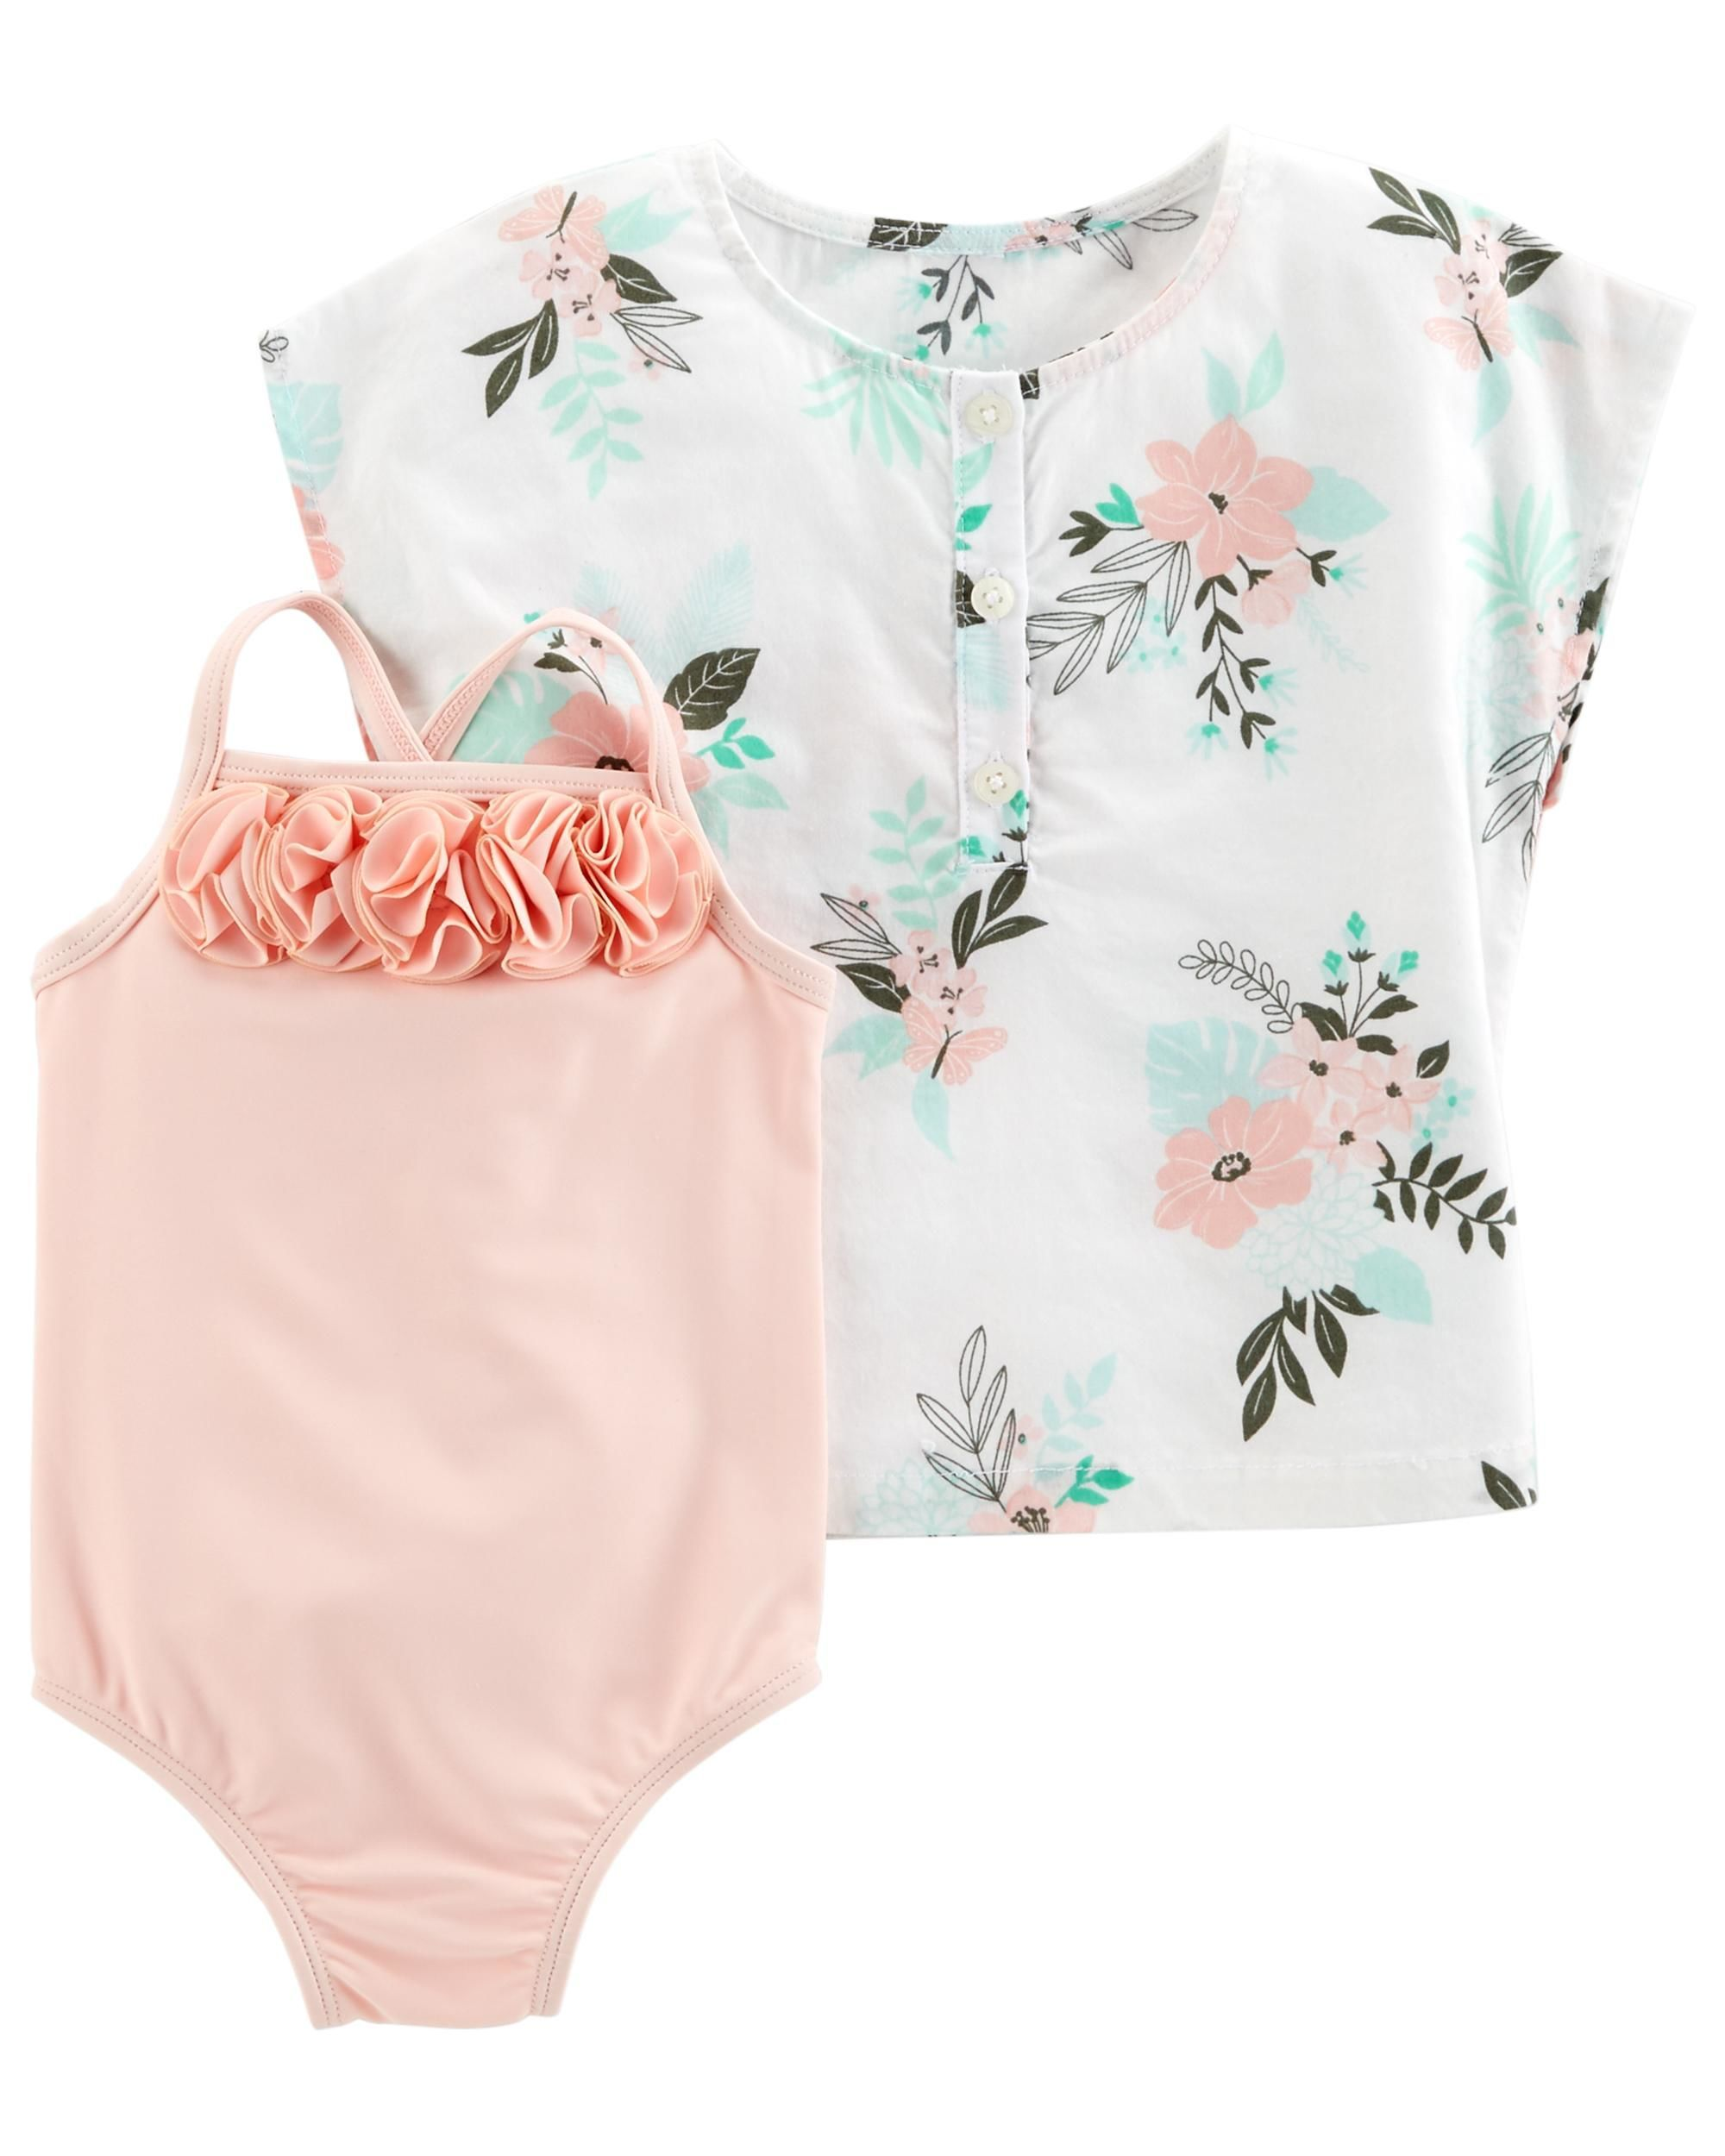 997d8fb7df Get her ready for summer vacation with this 2-piece set. Complete with a 1-piece  bathing suit and floral cotton cover-up.